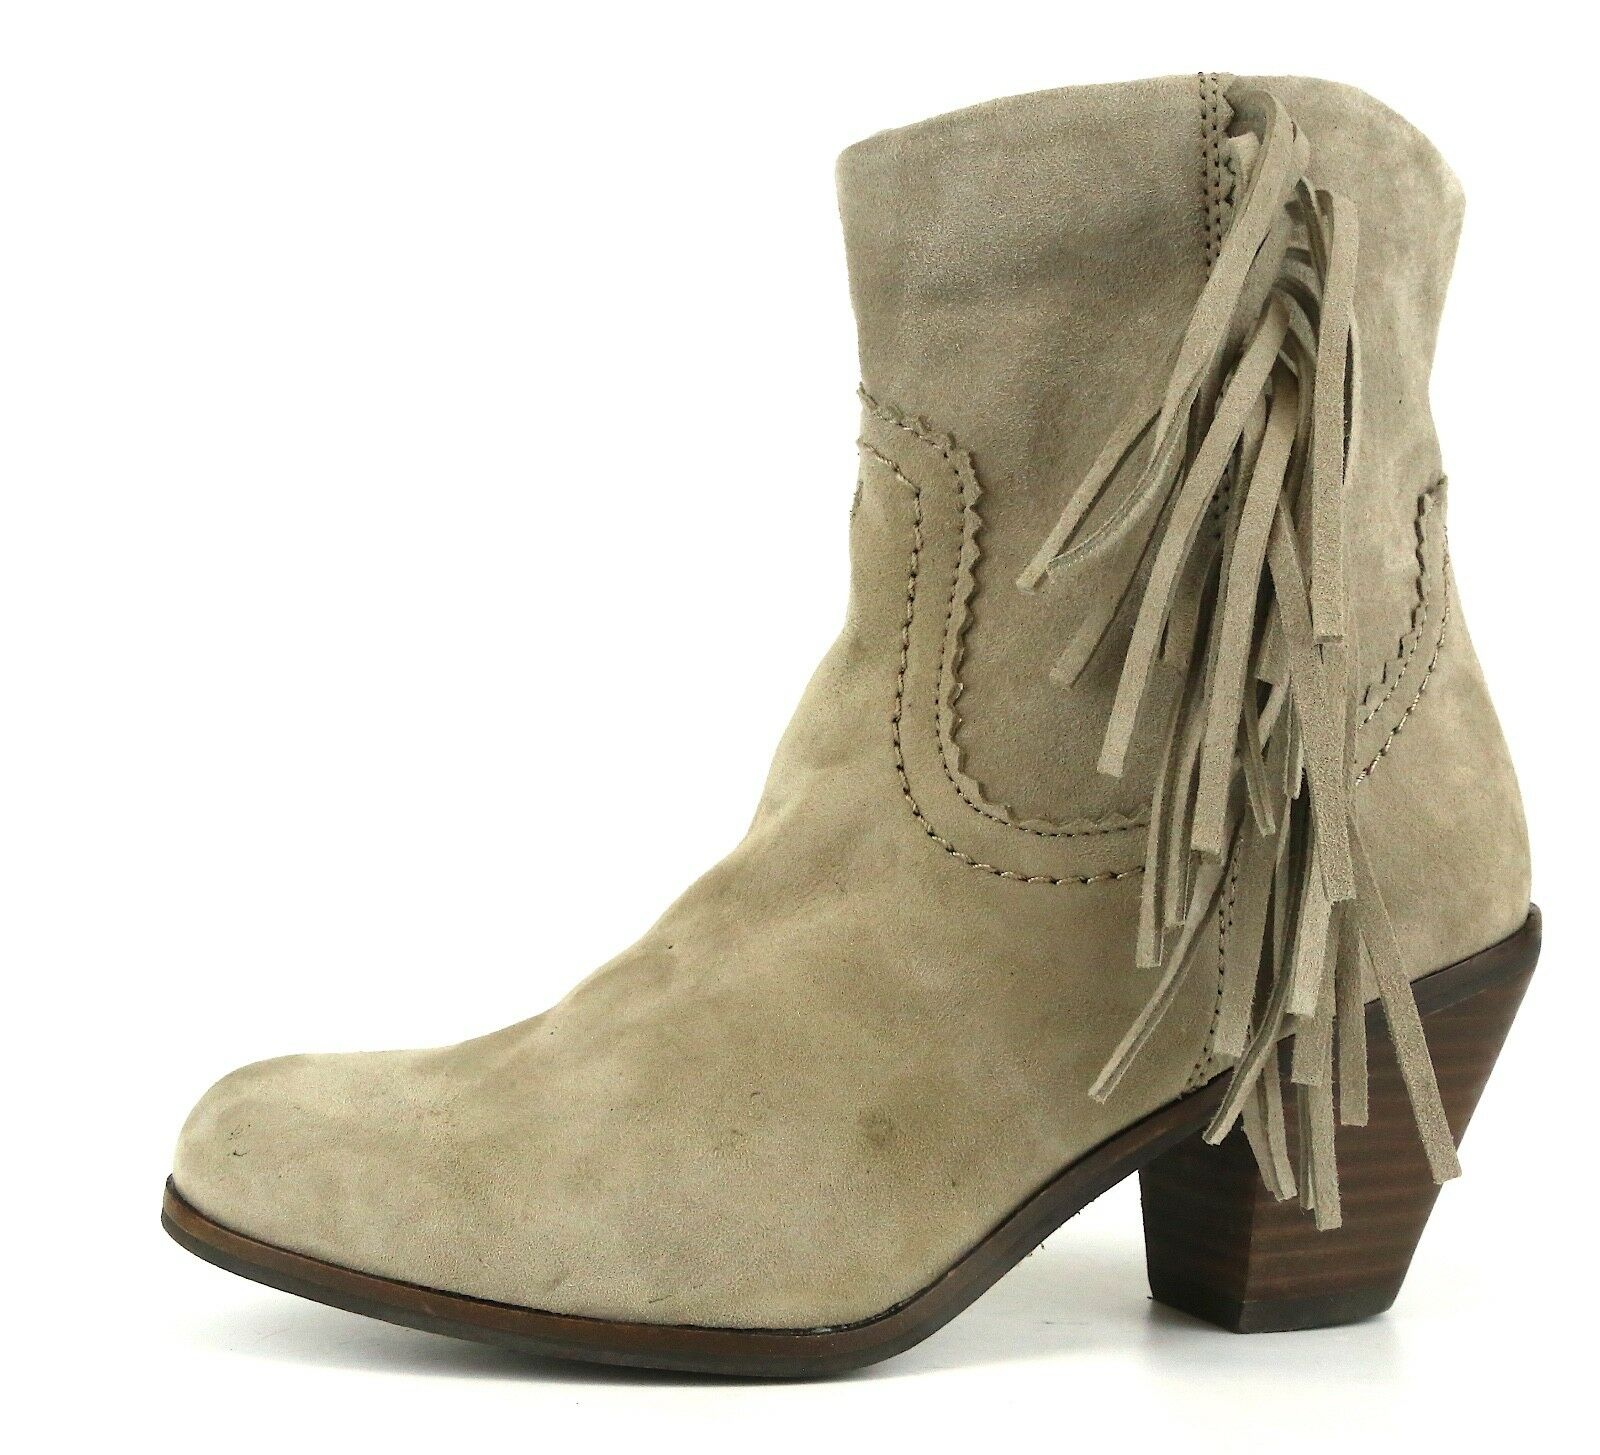 Sam Edelman Louie Suede Boot Grey Women Sz 4.5 M 5496